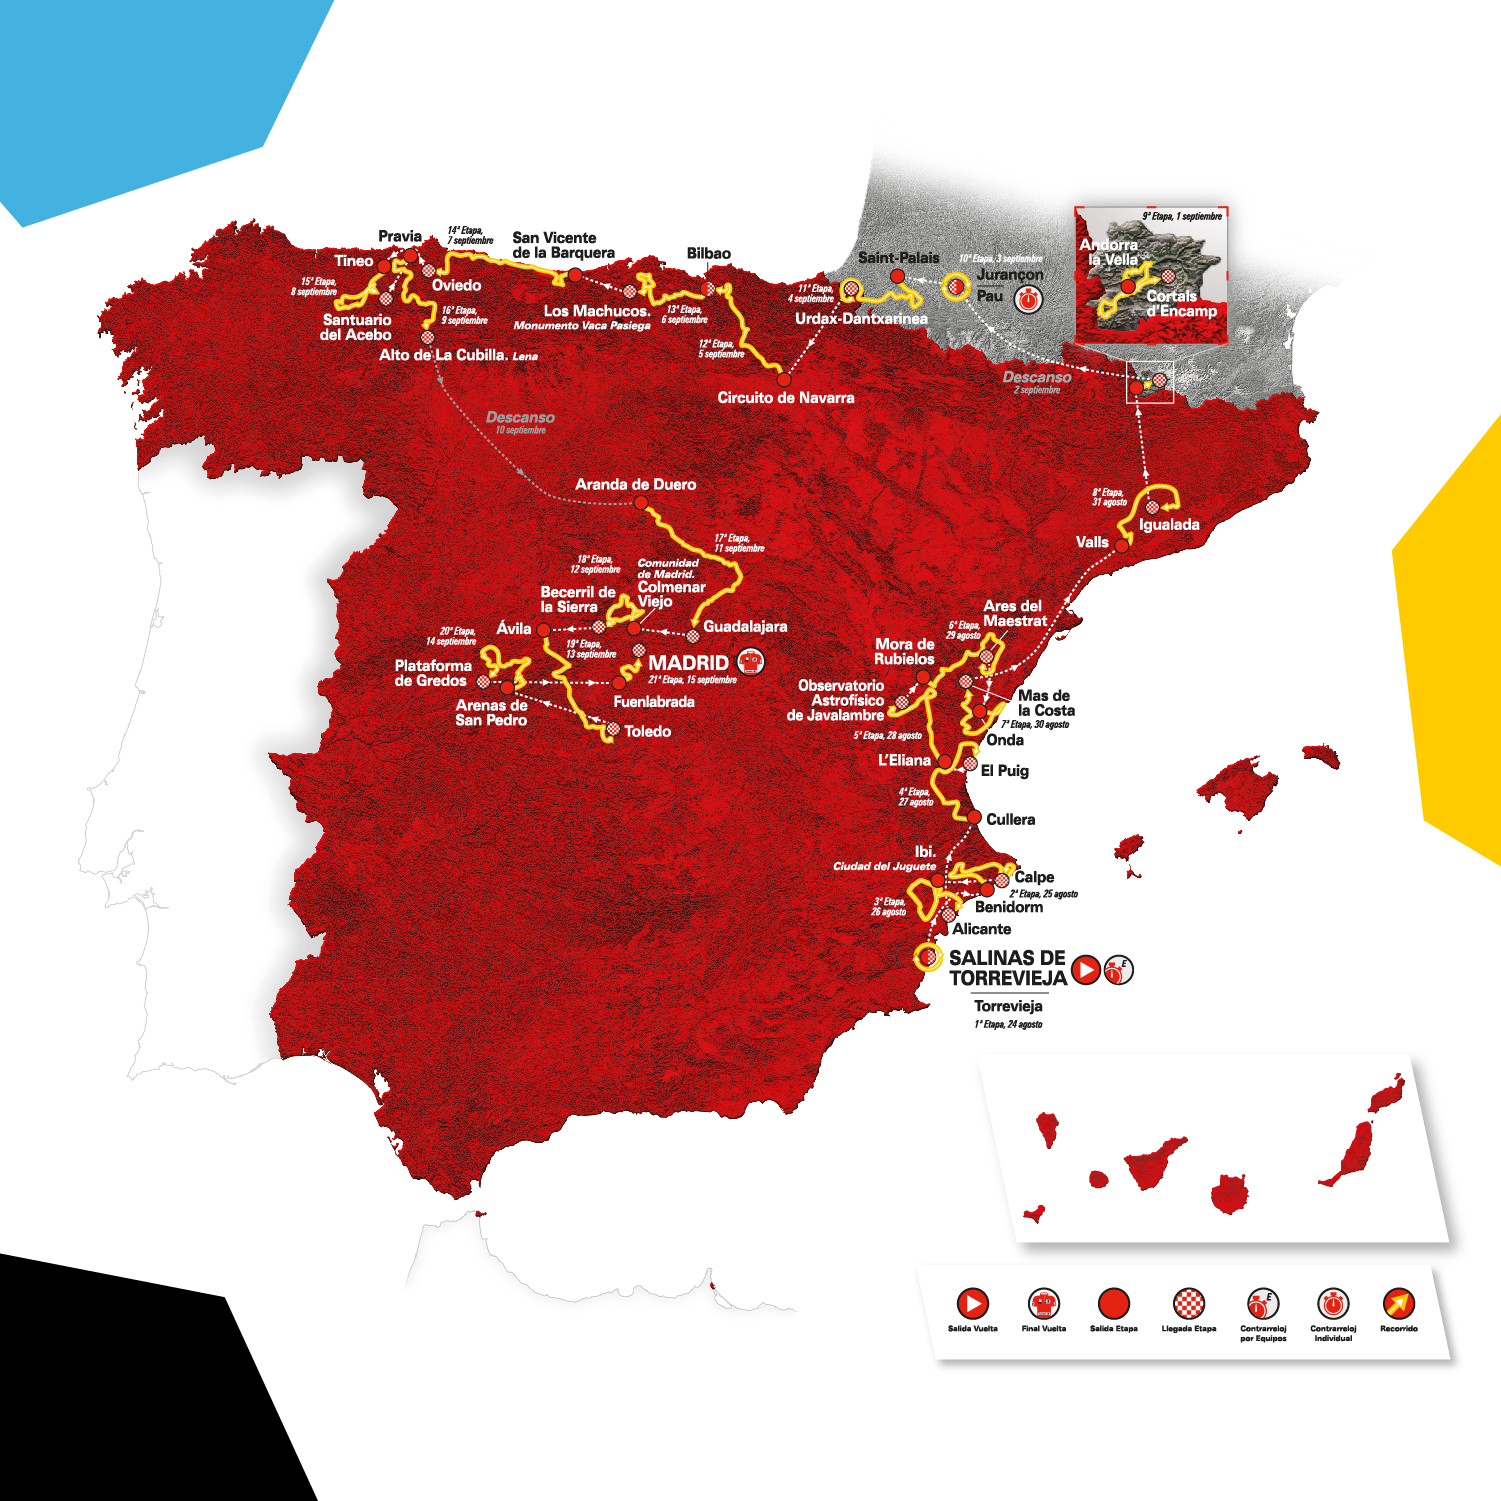 Vuelta a España 2019 route: all you need to know about the ... on map of taurus mountains, map of salt lake valley, map of sangre de cristo mountains, map of chicagoland area, map of cascade mountains, map of cargo hold, map of carpathian mountains, map of puget sound area, map of cumberland mountains, map of smoky mountains, map of rural area, map of southern alps, map of zagros mountains, map of appalachians, map of tri-state area, map of rocky mountains, map of greater boston area, map of dc area, map of sierras, map of atlanta area,